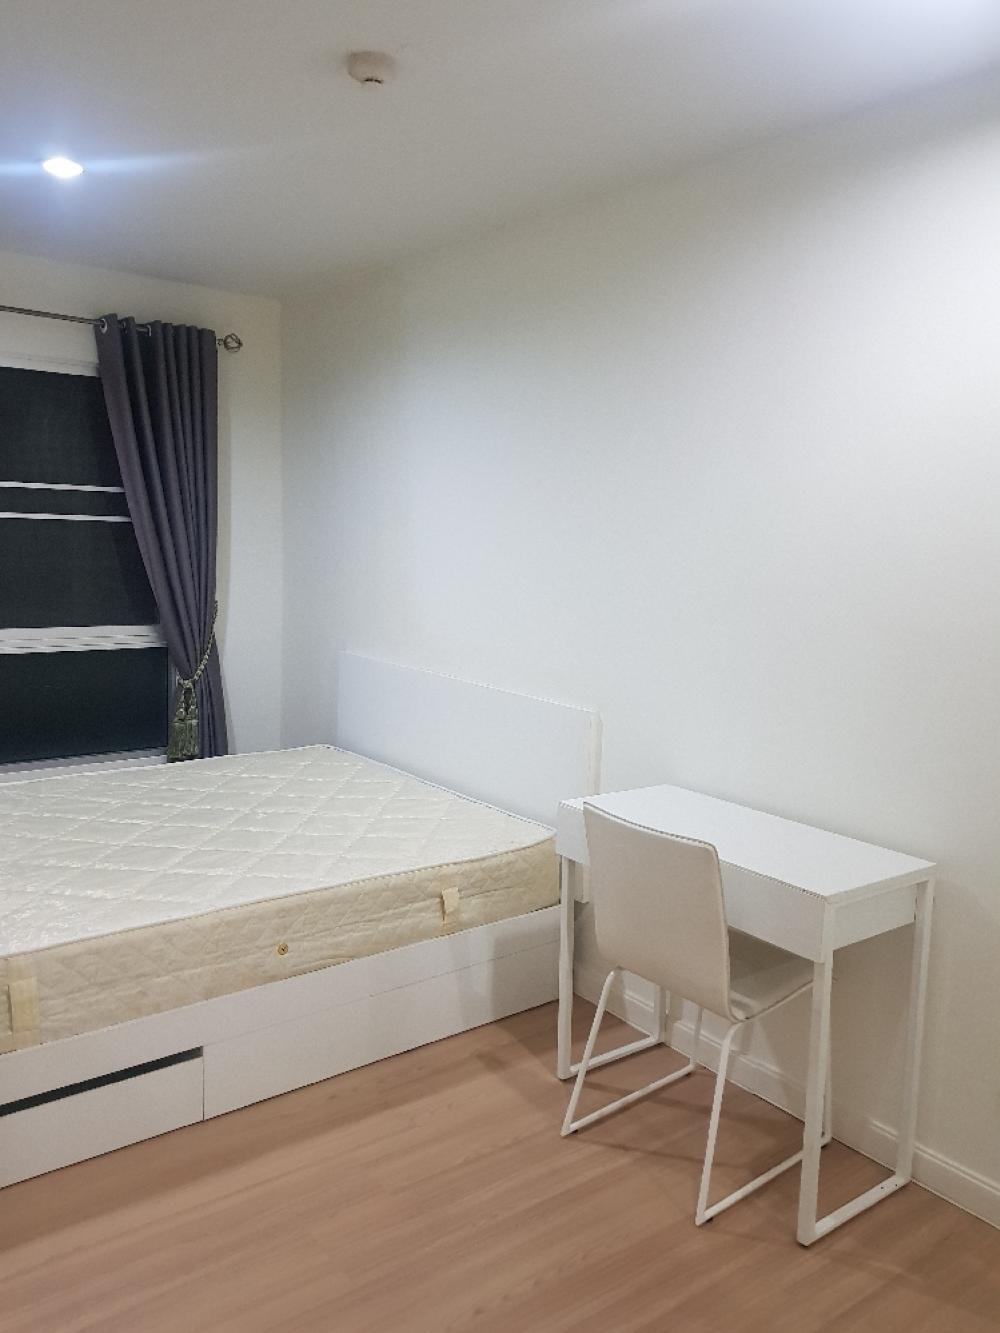 For RentCondoNawamin, Ramindra : Rental Condo Project The Kith Nawamin 32 sqm. Price 7,000 baht (New furniture, complete set, but can still be)